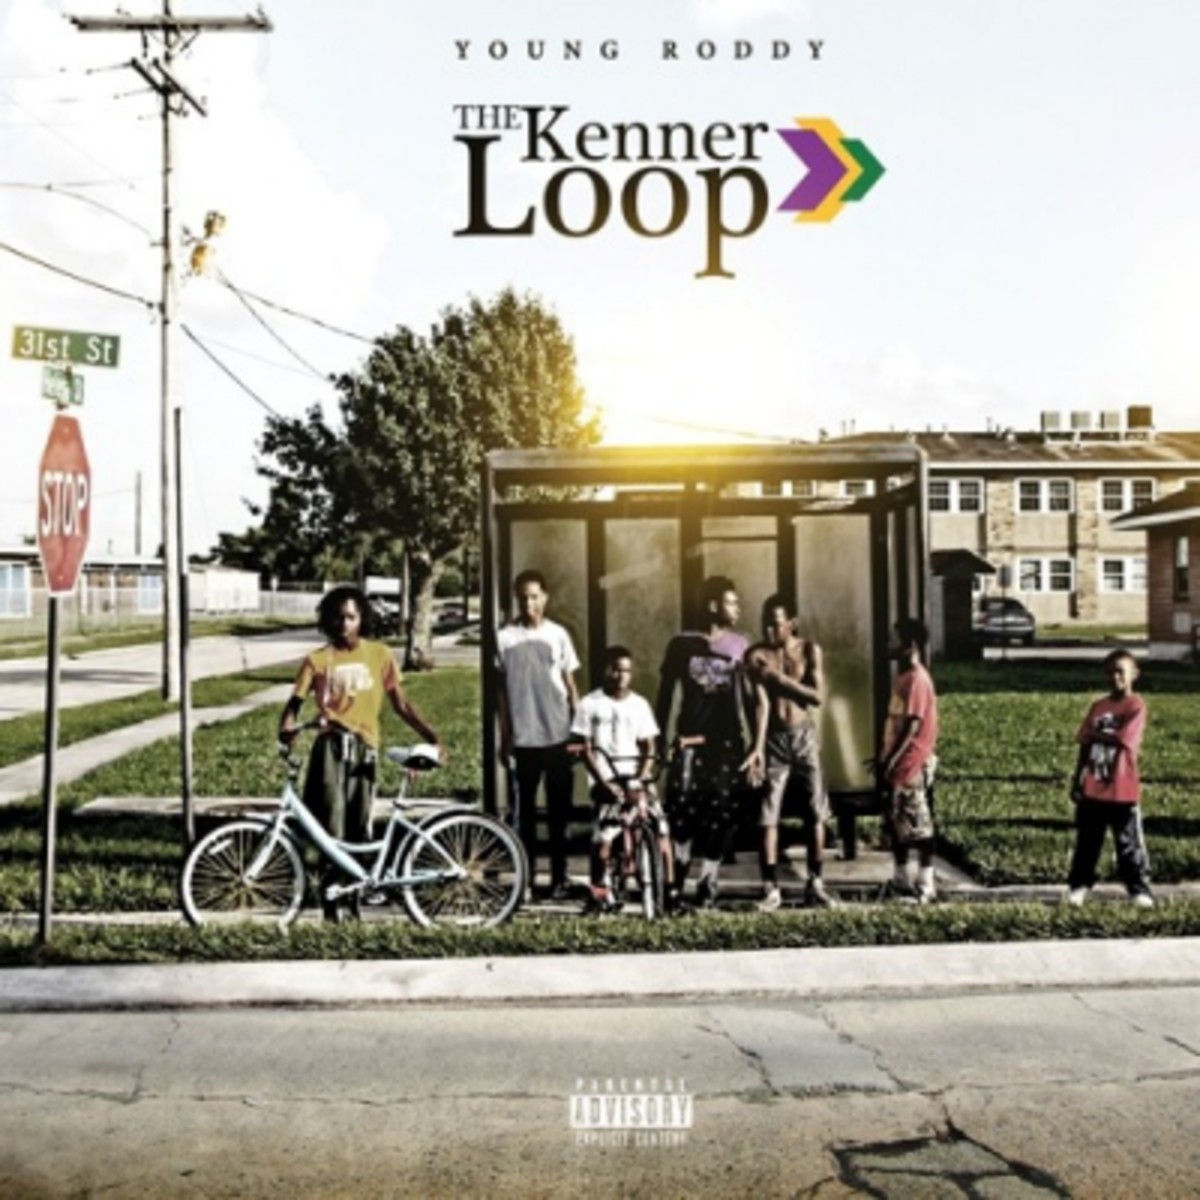 young-roddy-the-kenner-loop.jpg